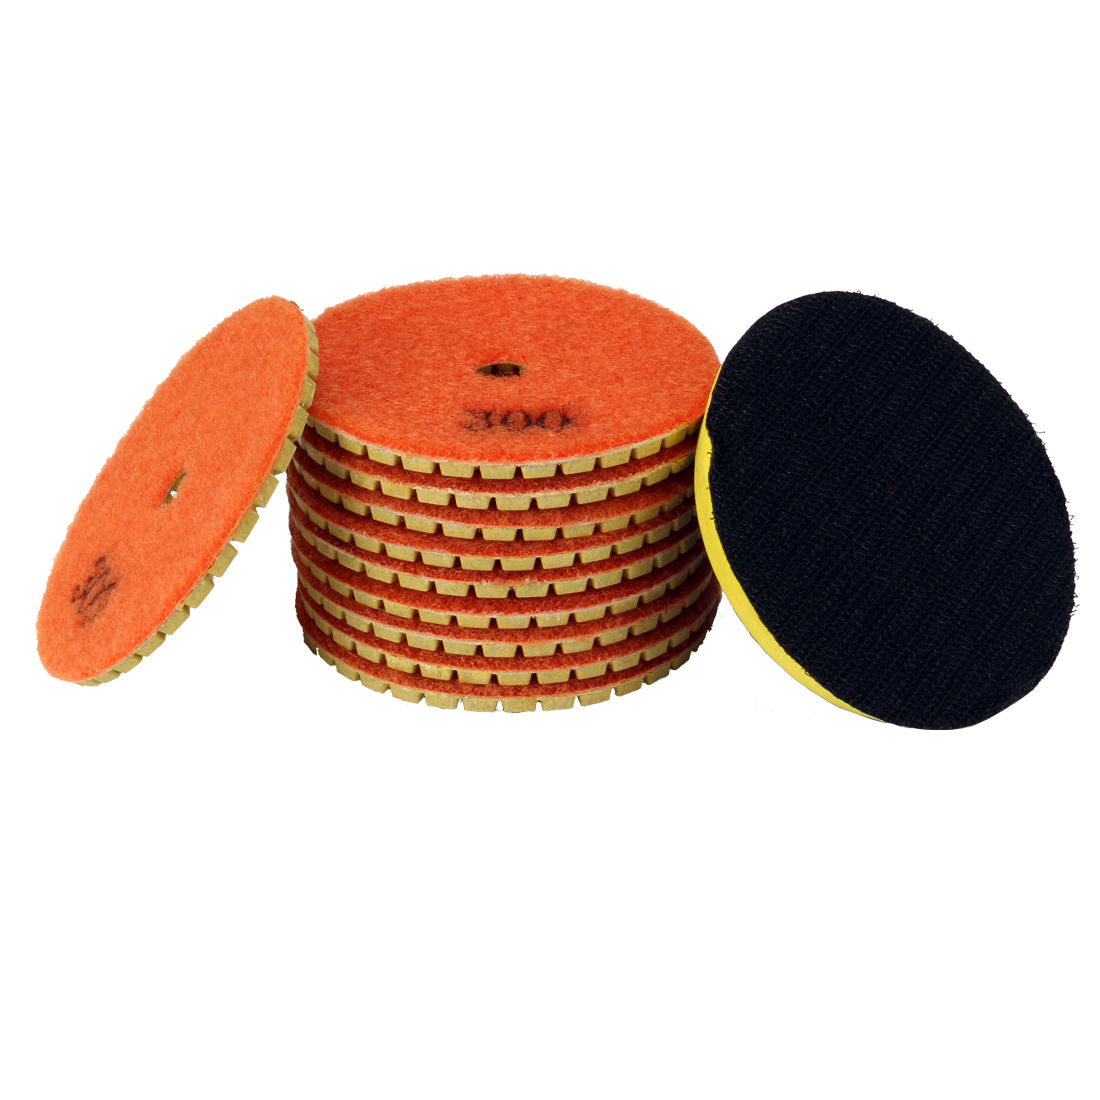 3-inch Diamond Wet Polishing Pad Disc Grit 300 10pcs for Granite Concrete Marble